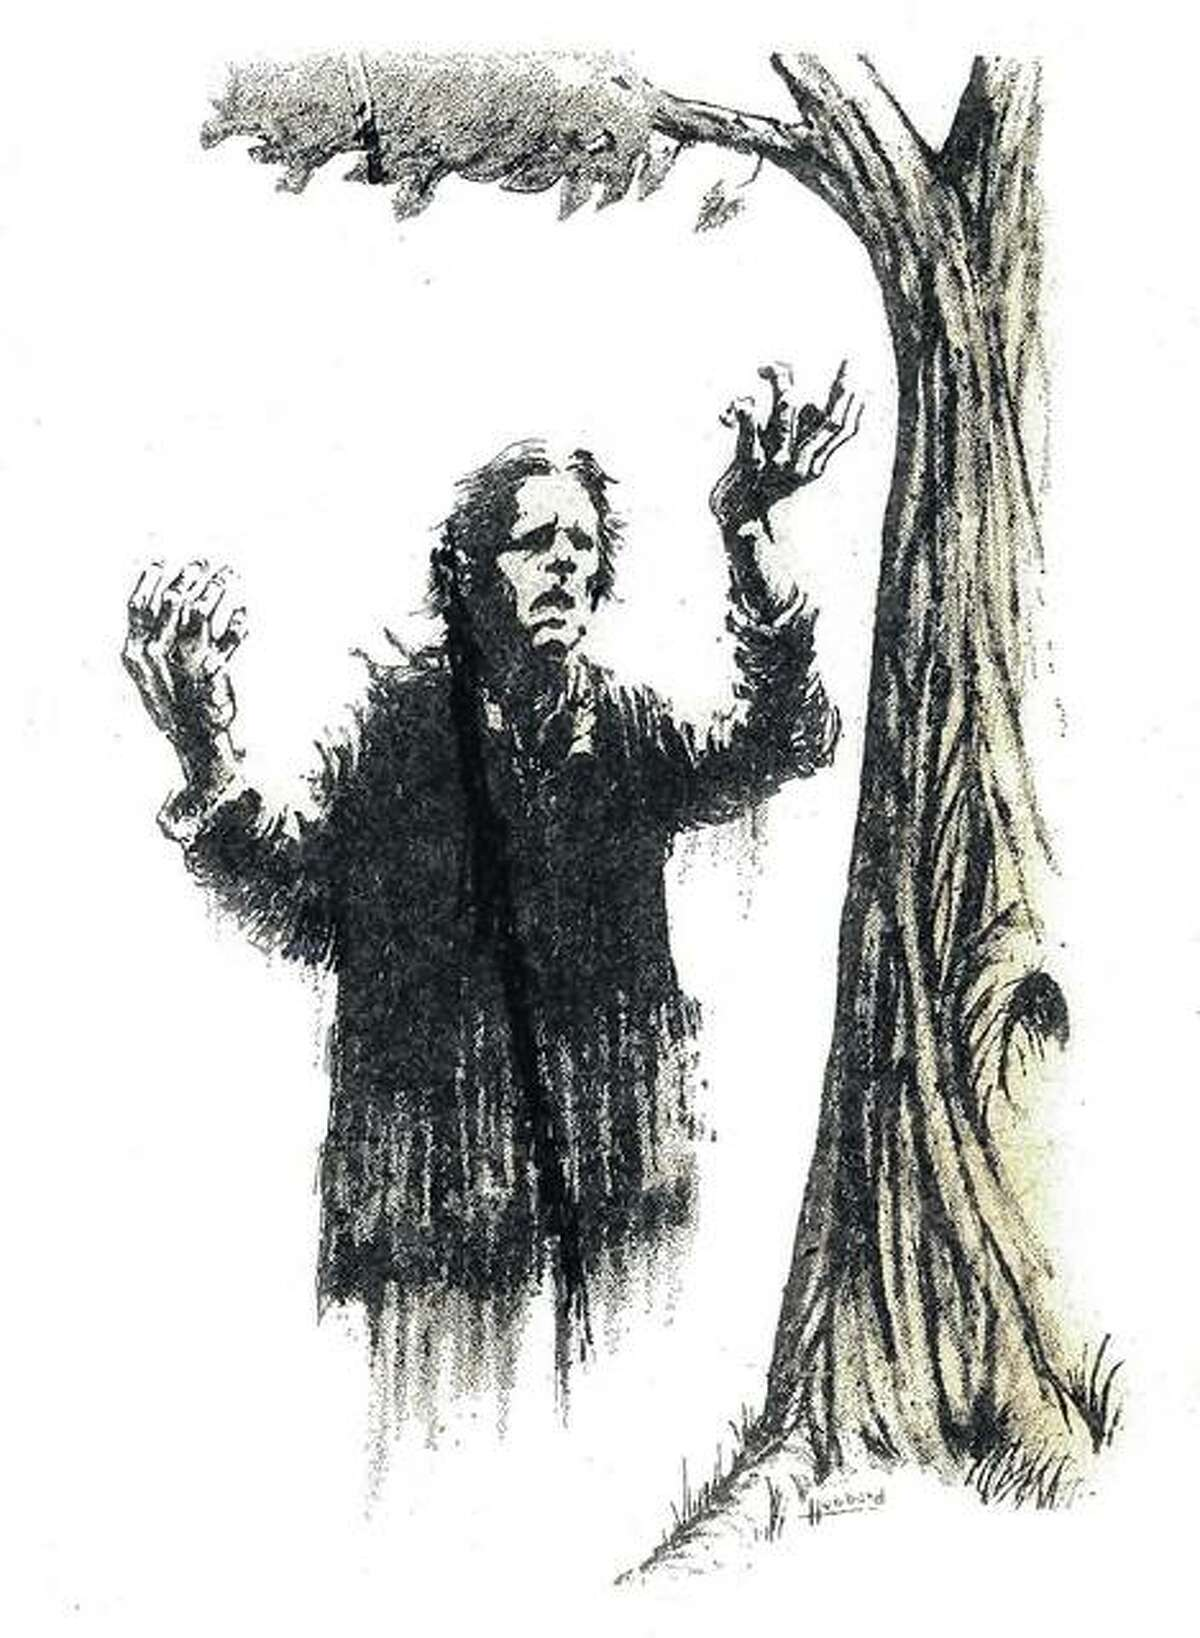 This sketch, made in the 1970s, is an artist's attempt to capture the essence of Old Book, who wailed at every funeral at the former Peoria State Hospital. While grieving, he often would lean on a particular tree - the Graveyard Elm - for support.